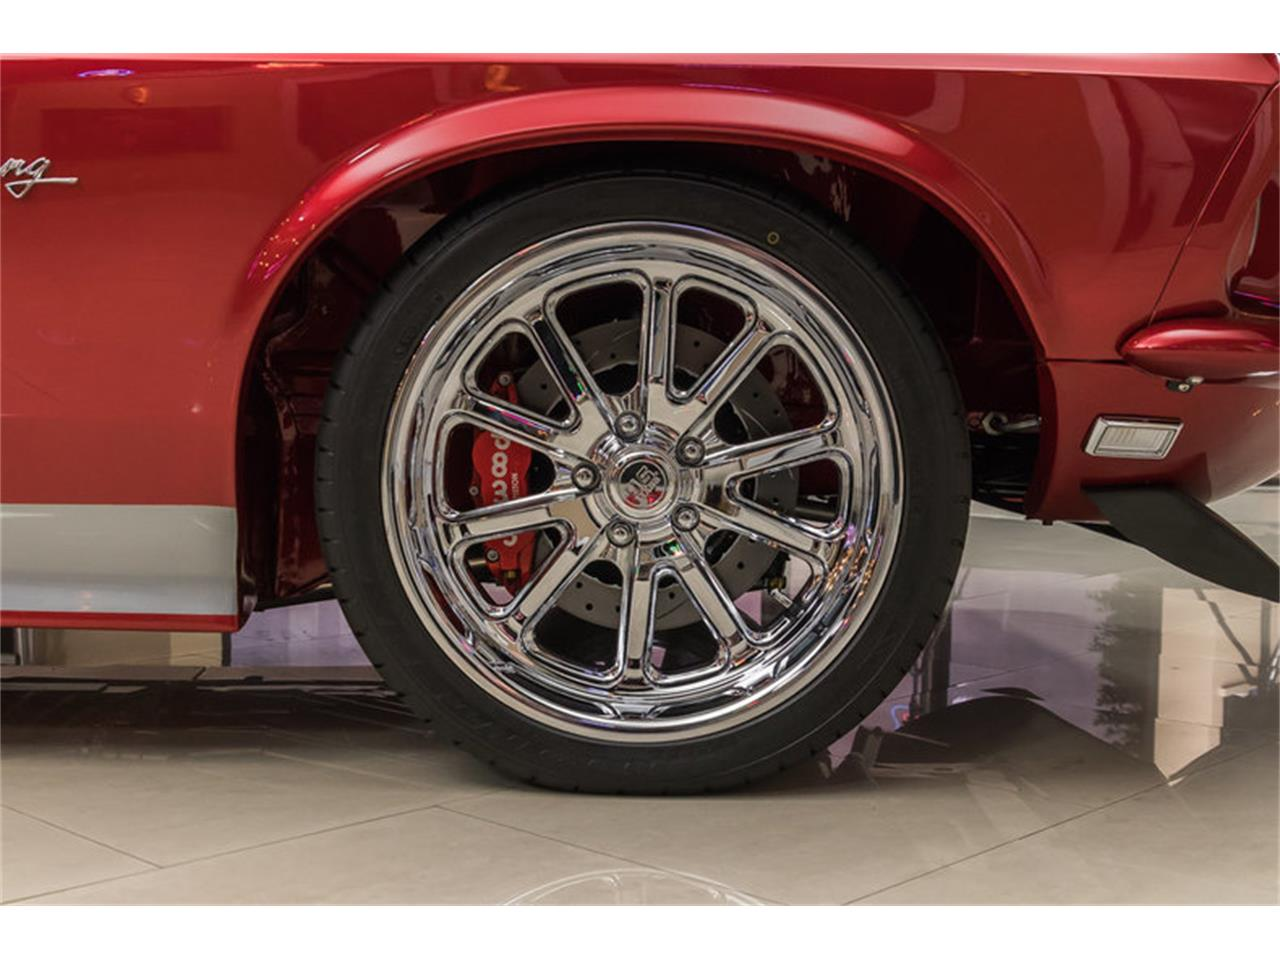 Large Picture of 1969 Ford Mustang Fastback Restomod located in Michigan - $194,900.00 - L6C8